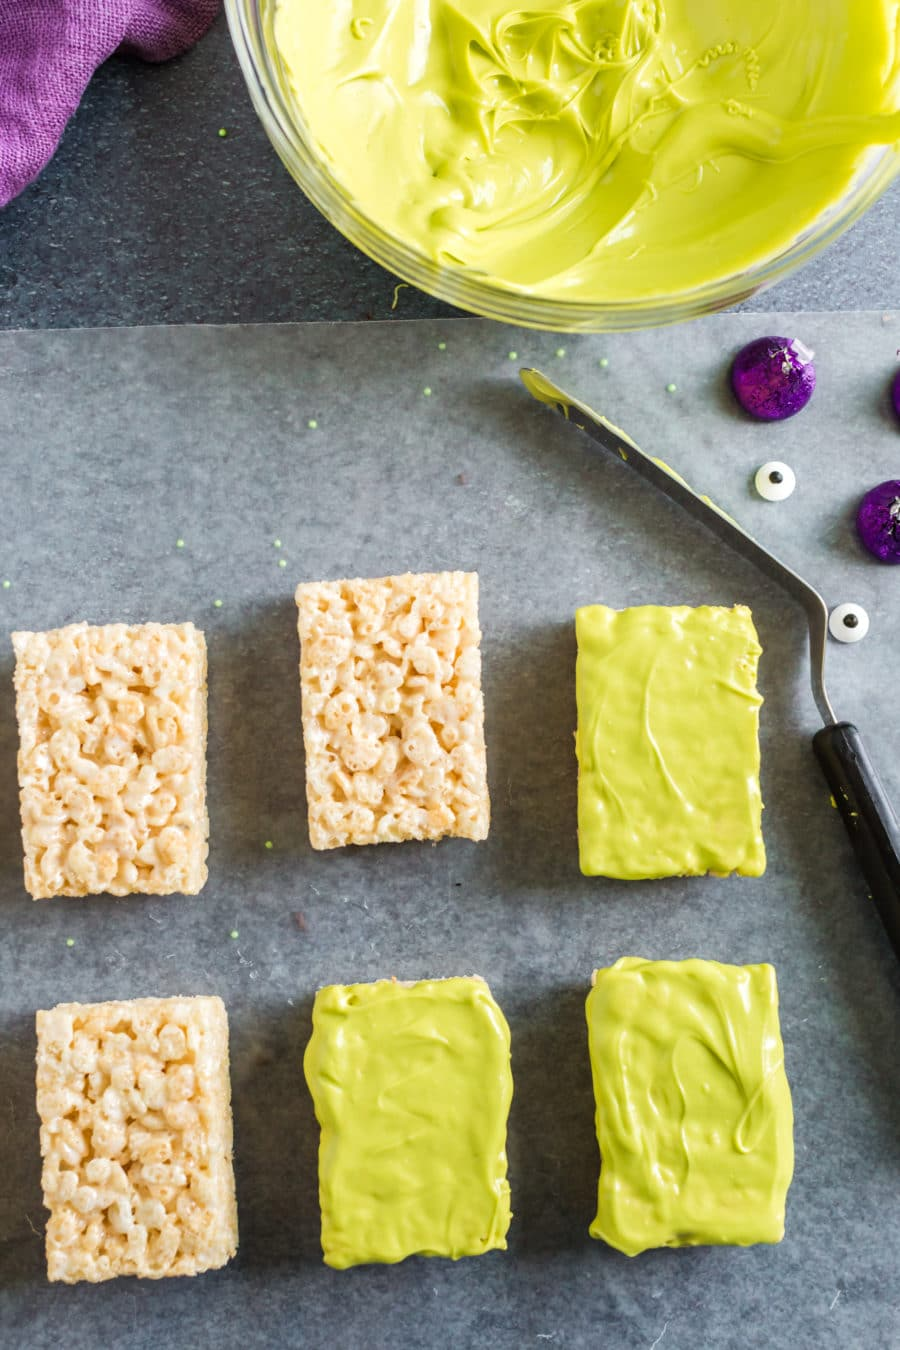 Halloween rice krispies dipped in green chocolate